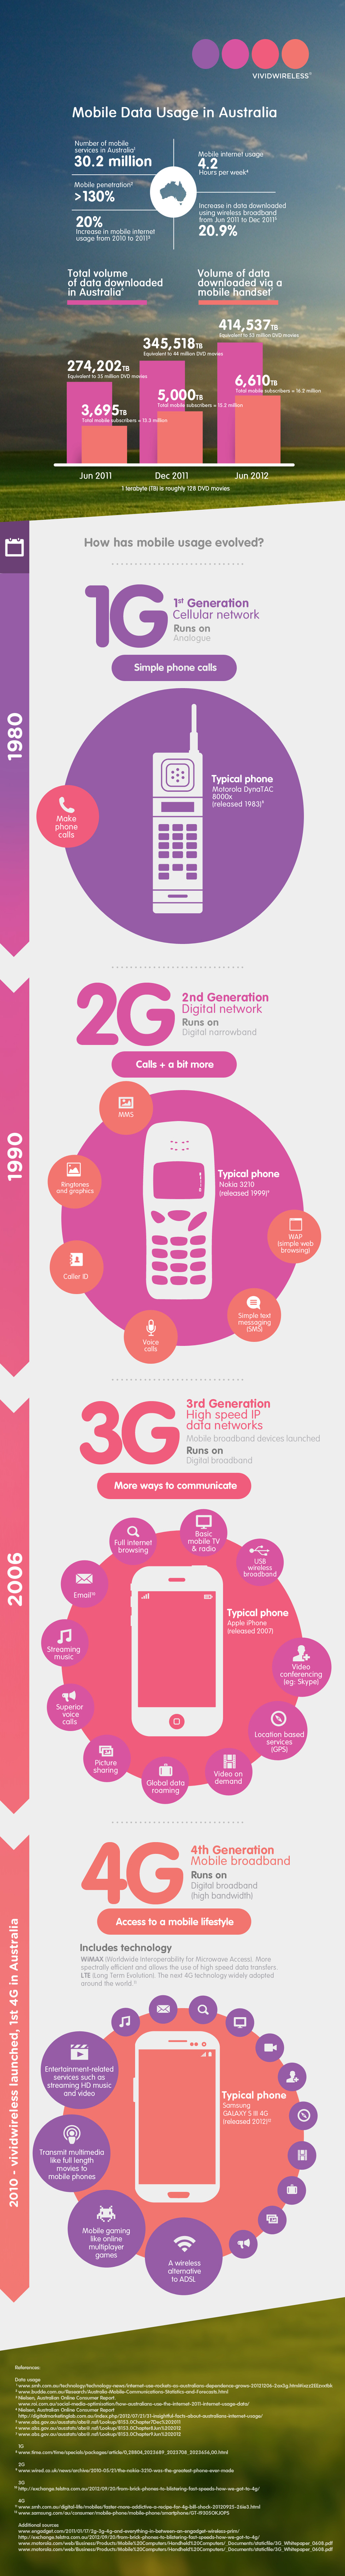 http://www.vividwireless.com.au/sites/www.vividwireless.com.au/files/images/Vivid_Infographic_FINAL.jpg